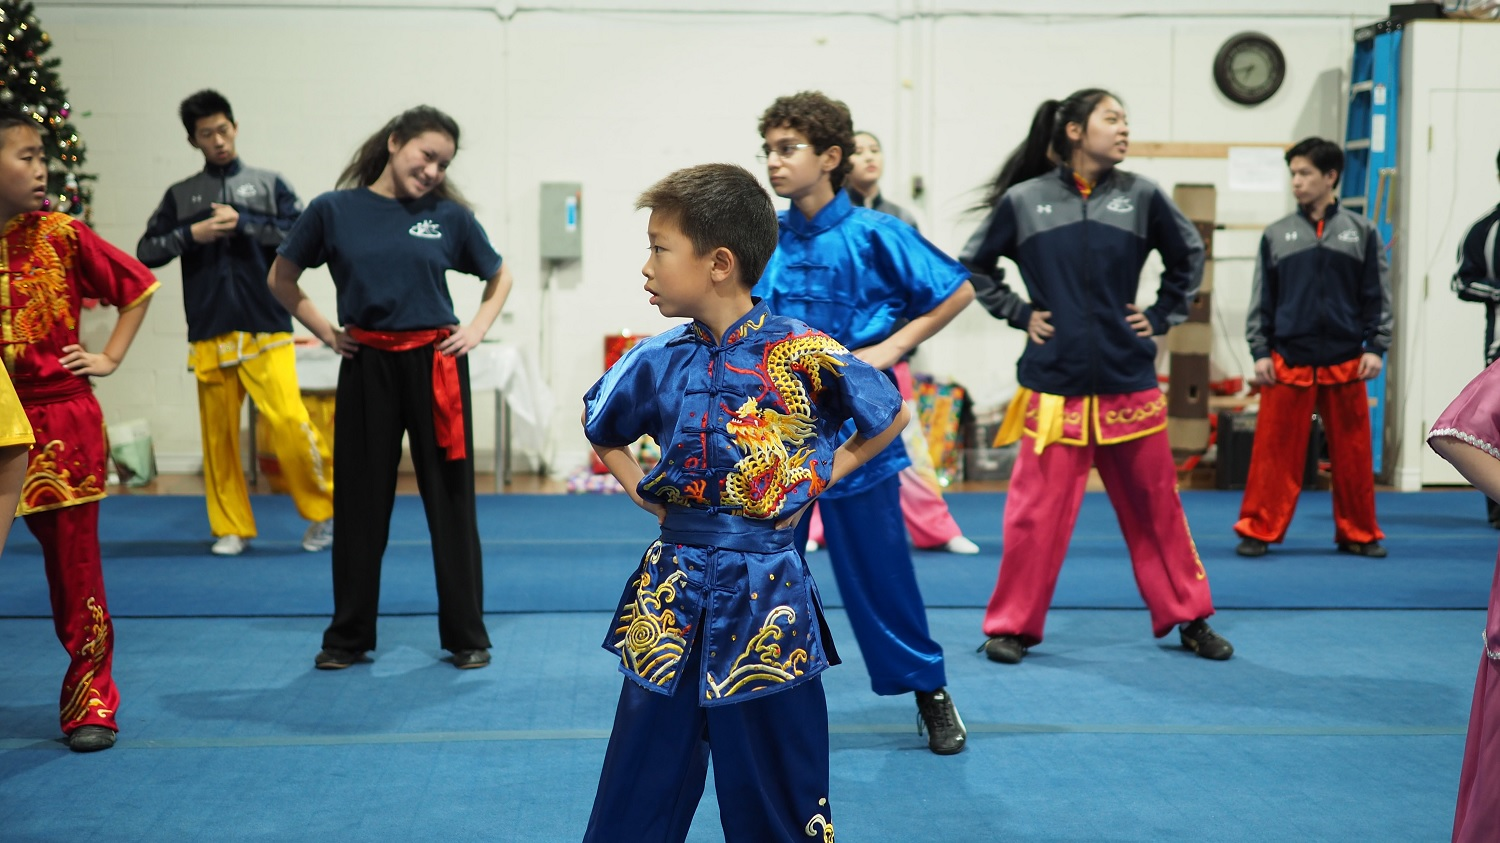 wayland-li-wushu-canada-ontario-toronto-classes-taolu-holiday-party-2017-15.jpg